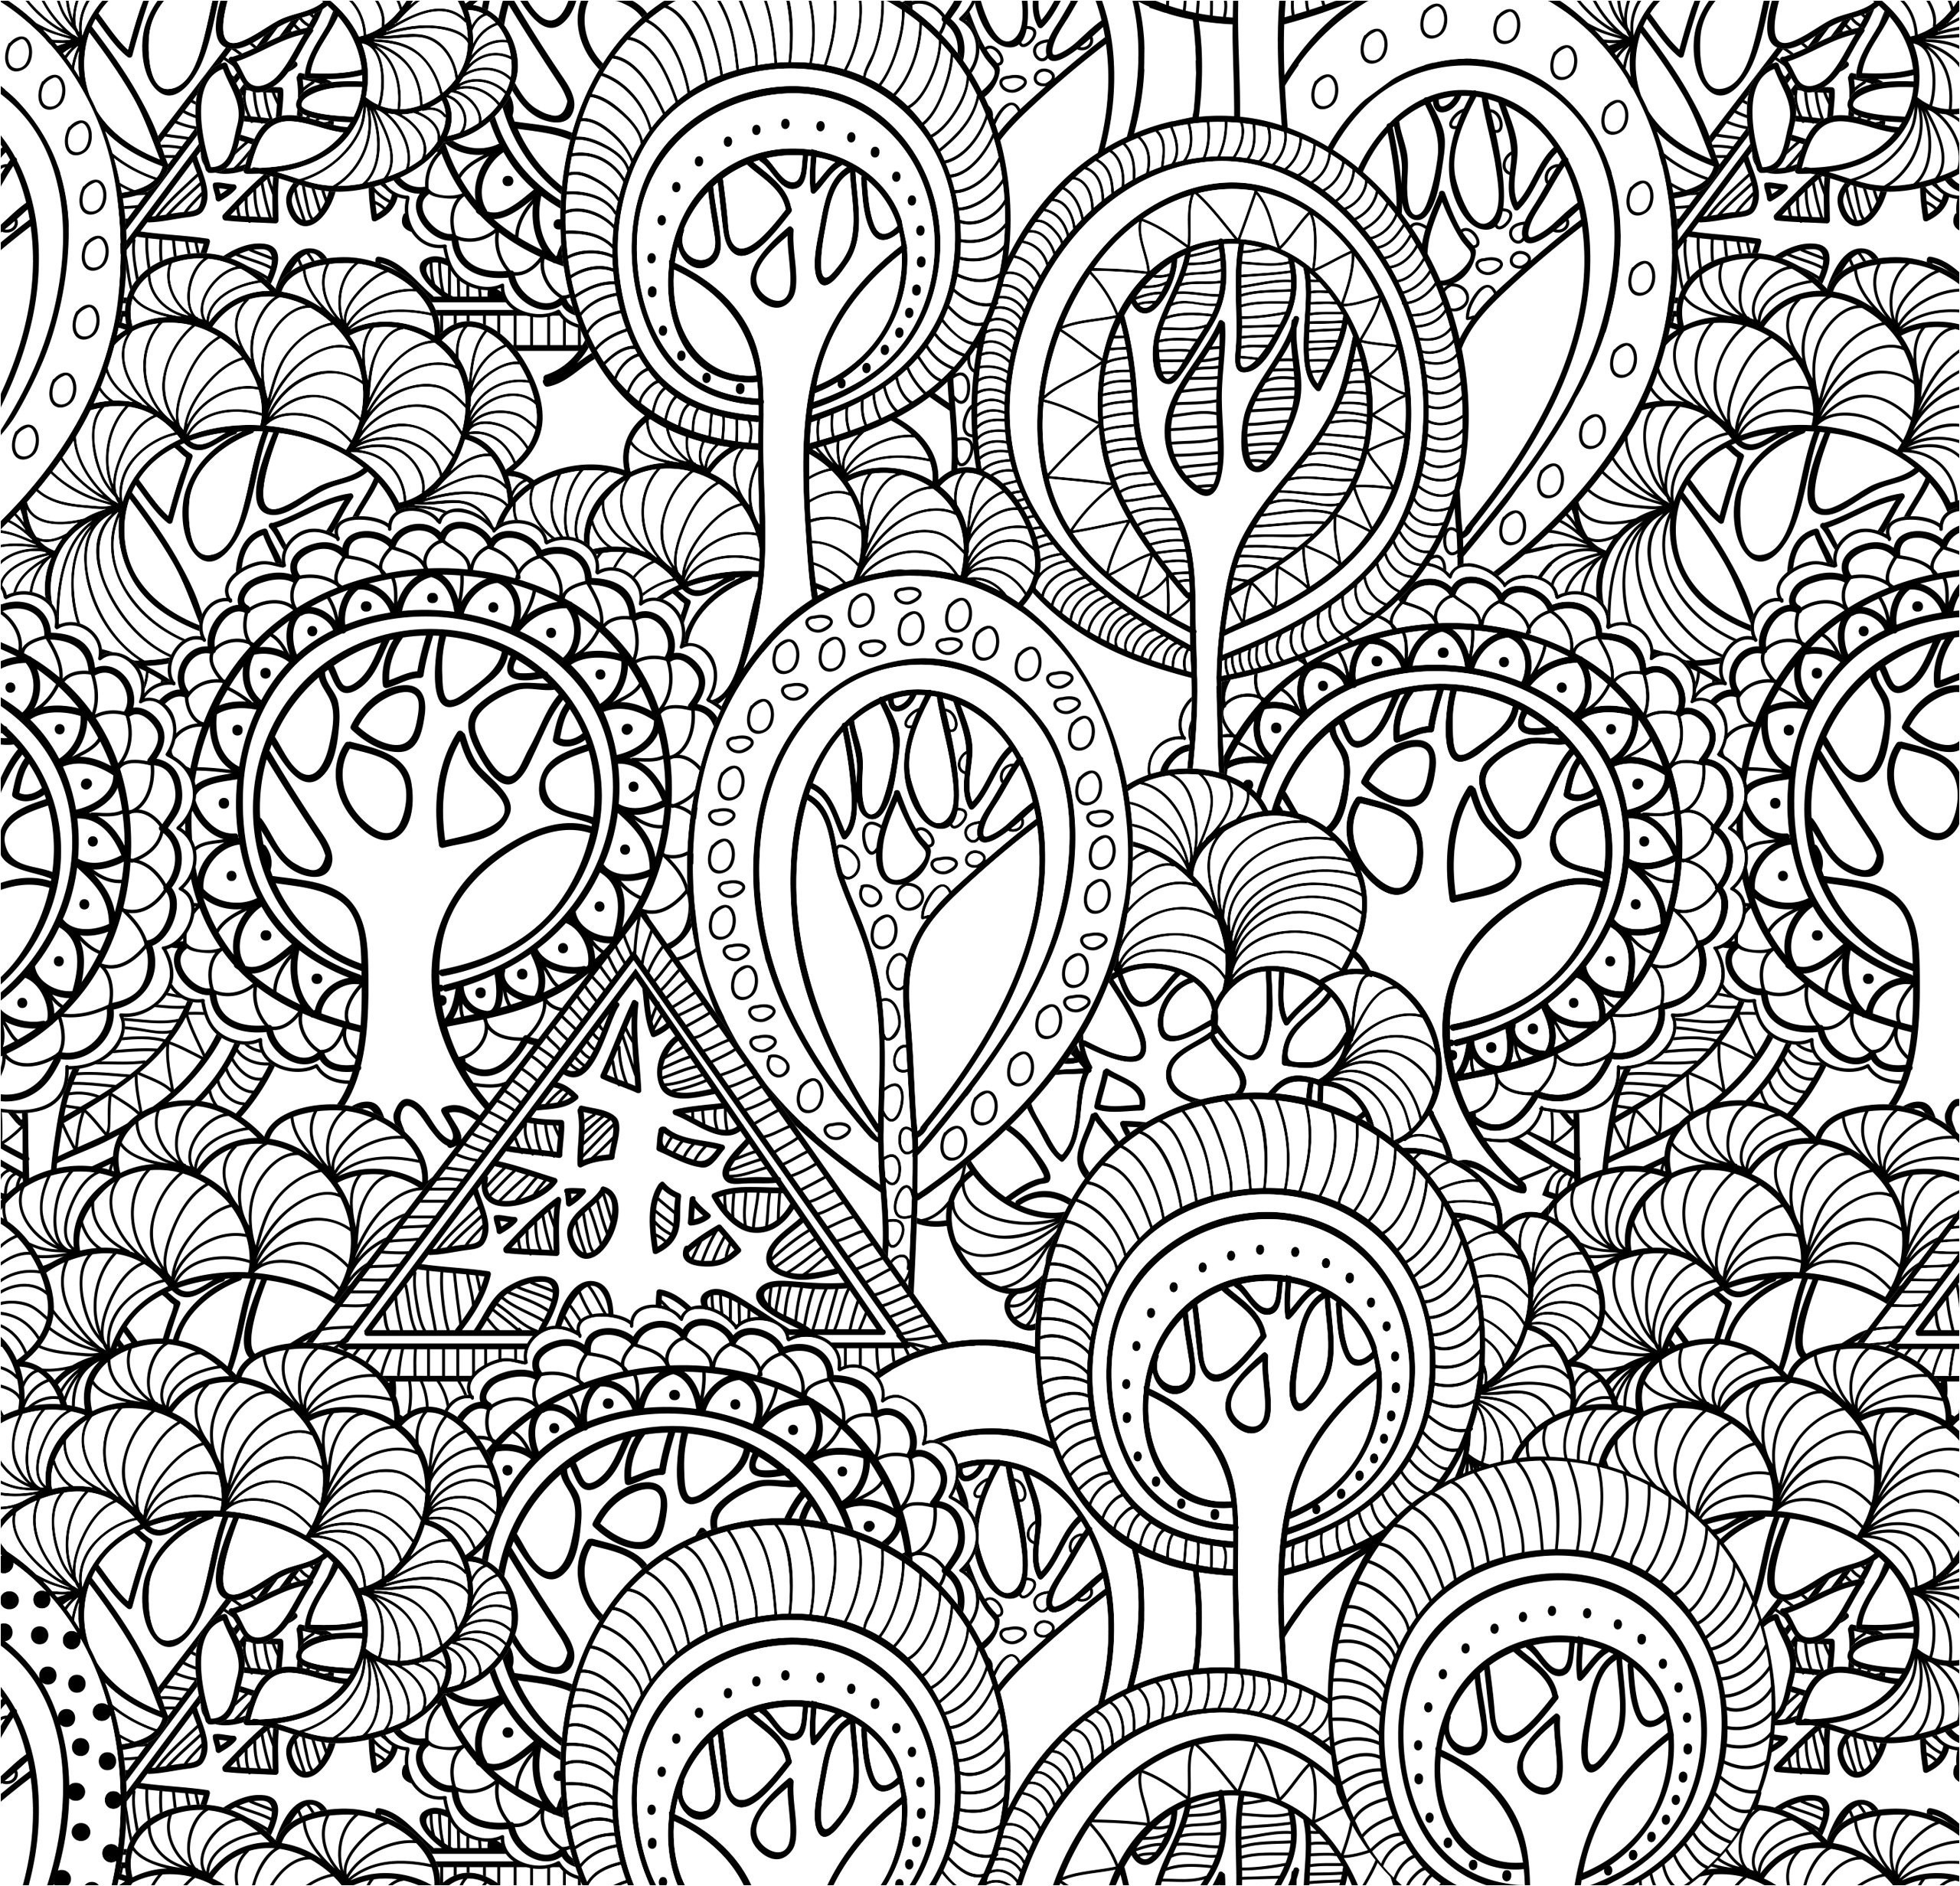 glass vase fish bowl of fresh fish bowl coloring page cool coloring pages coloring sheets intended for fresh fish bowl coloring page cool coloring pages